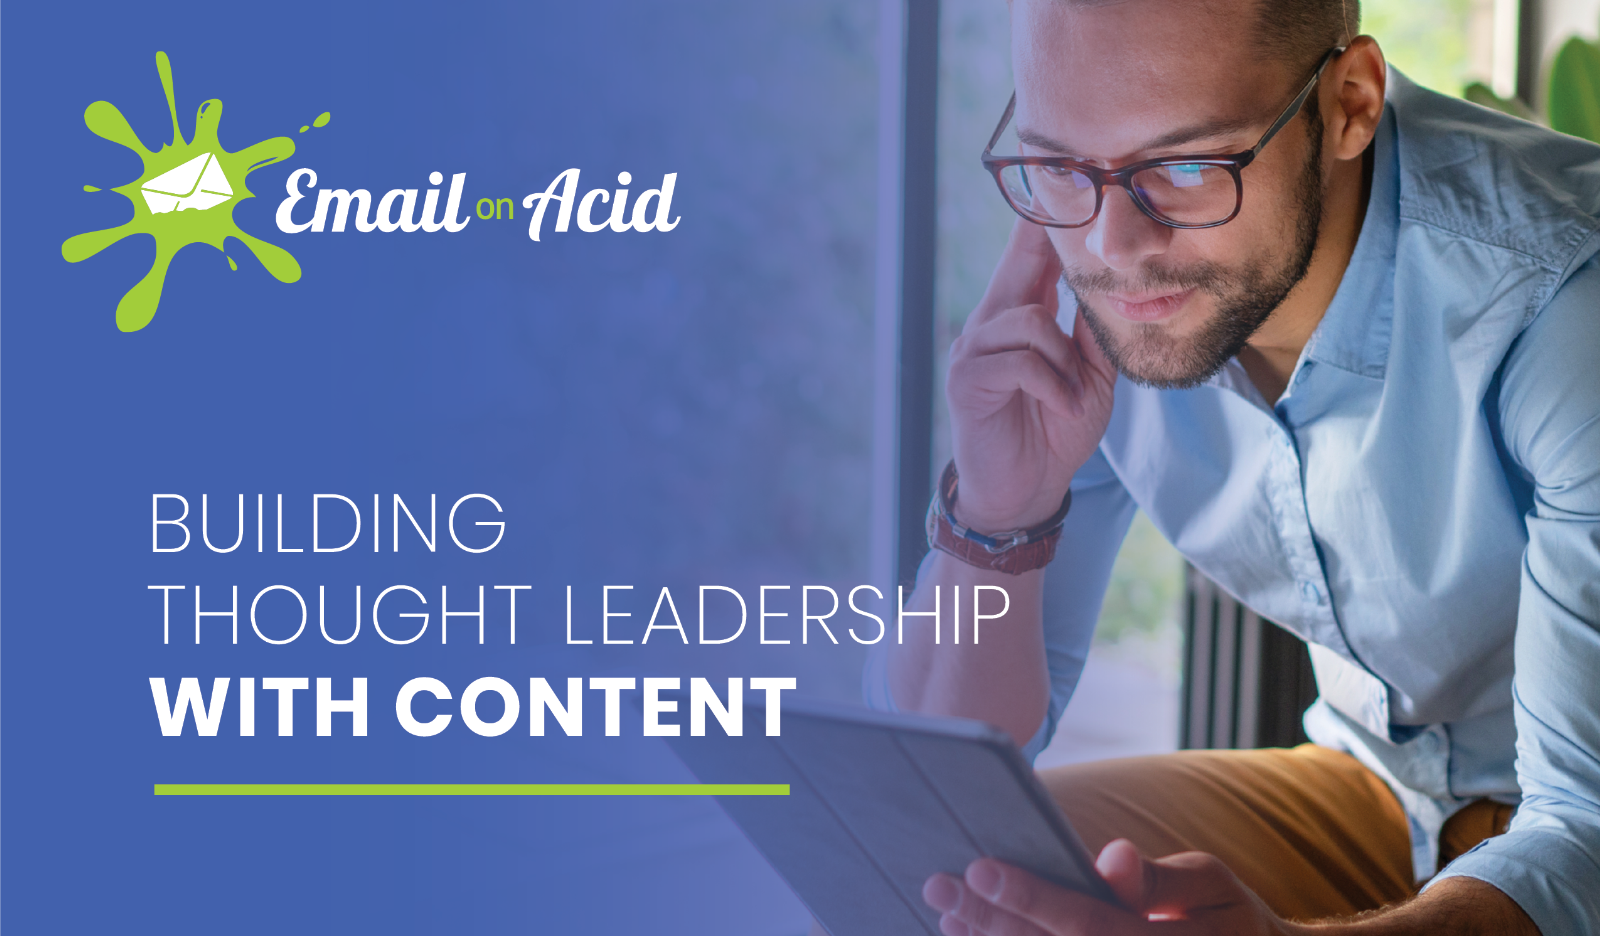 thought leadership content white paper cover image